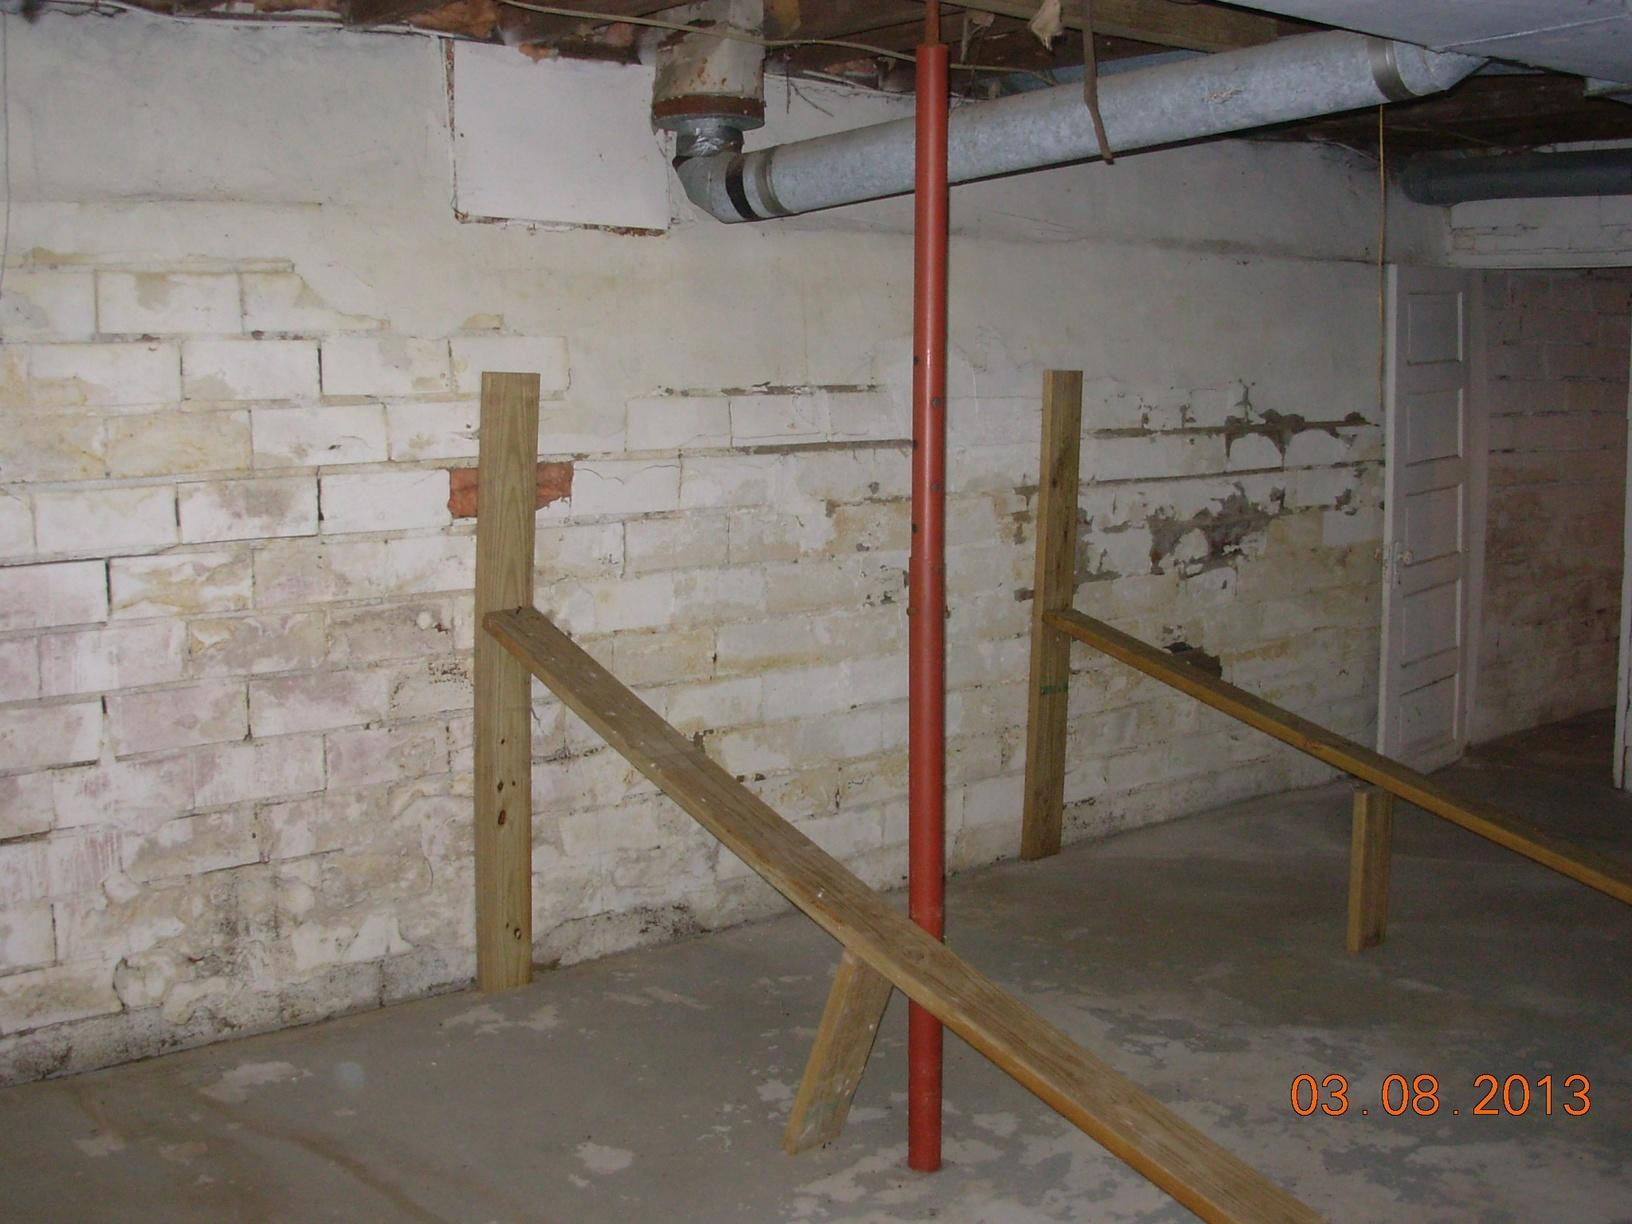 Basement Walls Falling In